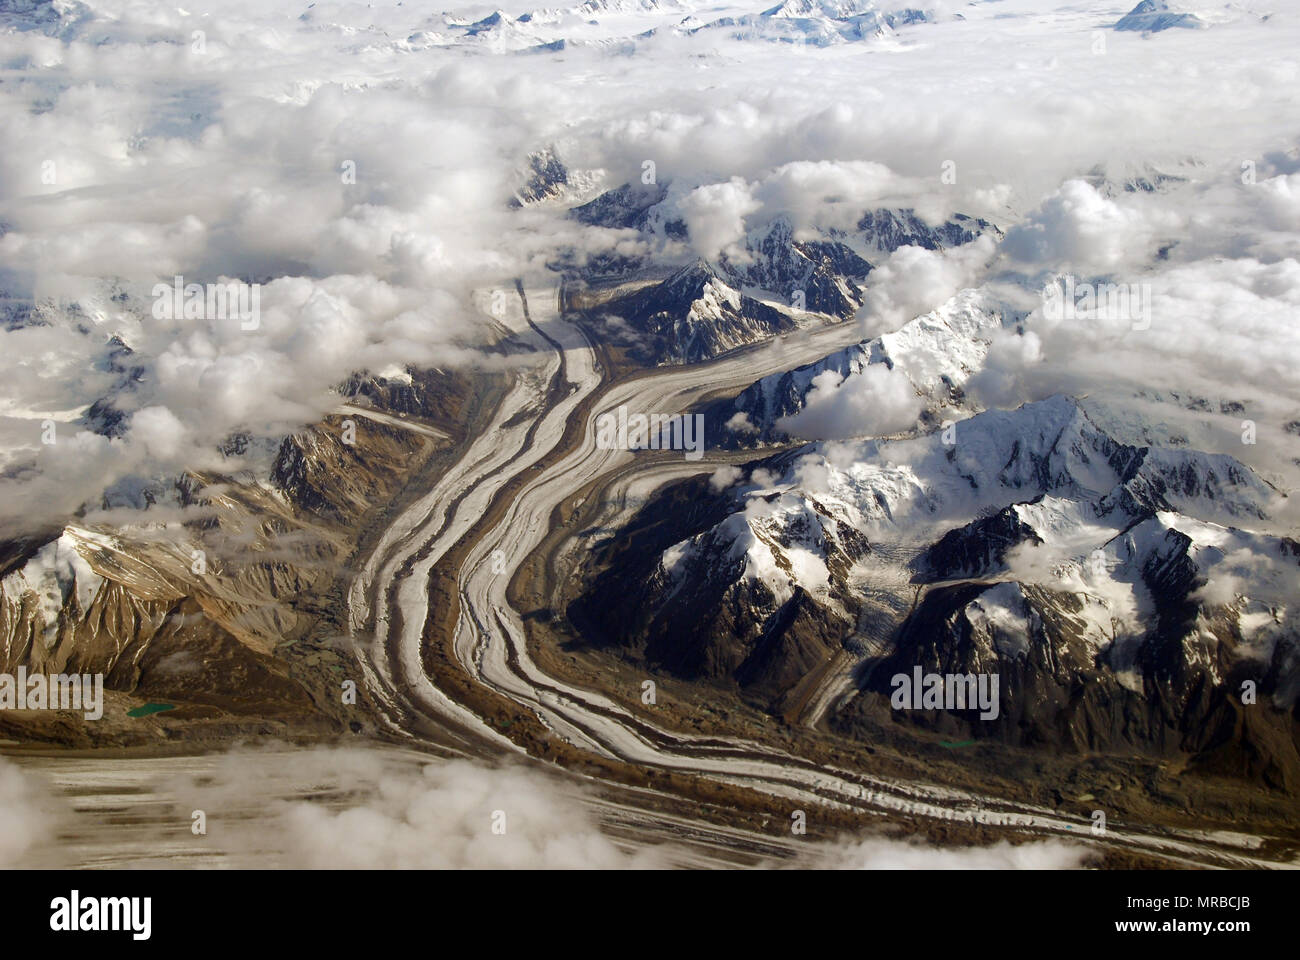 The Chugach mountains in Alaska with summer snow and clouds - Stock Image